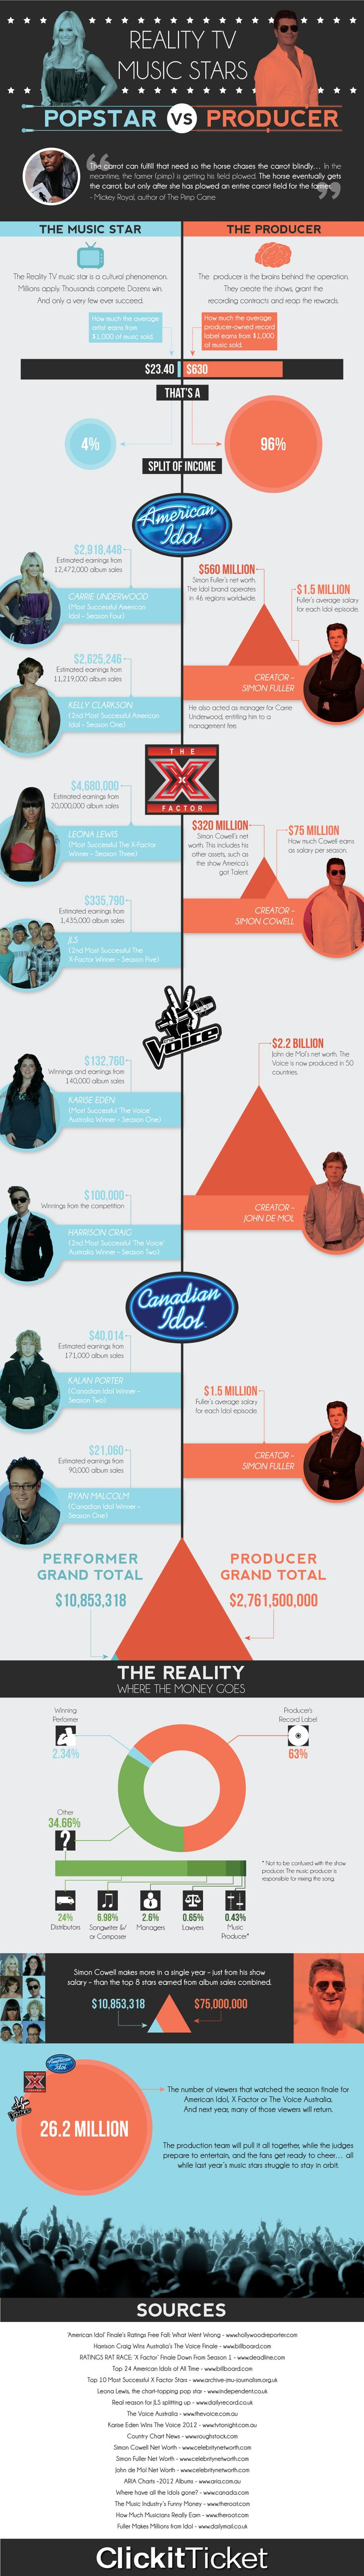 #Business #Infographics - Reality TV Music Stars – Pop Star vs. Producer  #Infografia